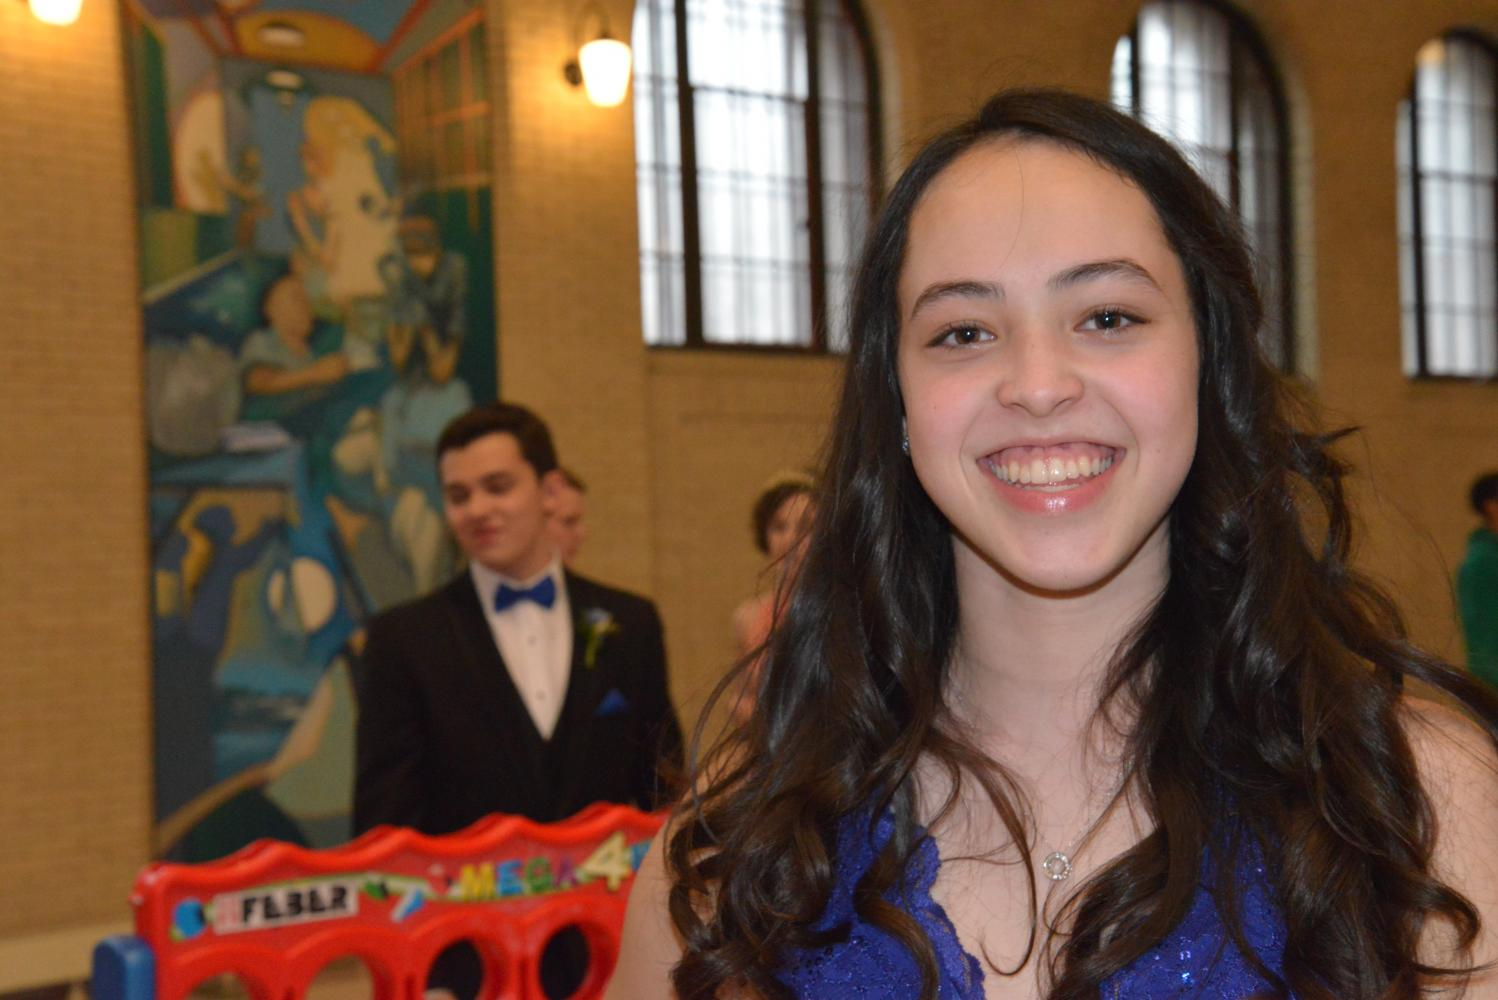 Junior Maya Shrestha wore her hair in soft curls to prom when she was in 9th grade.